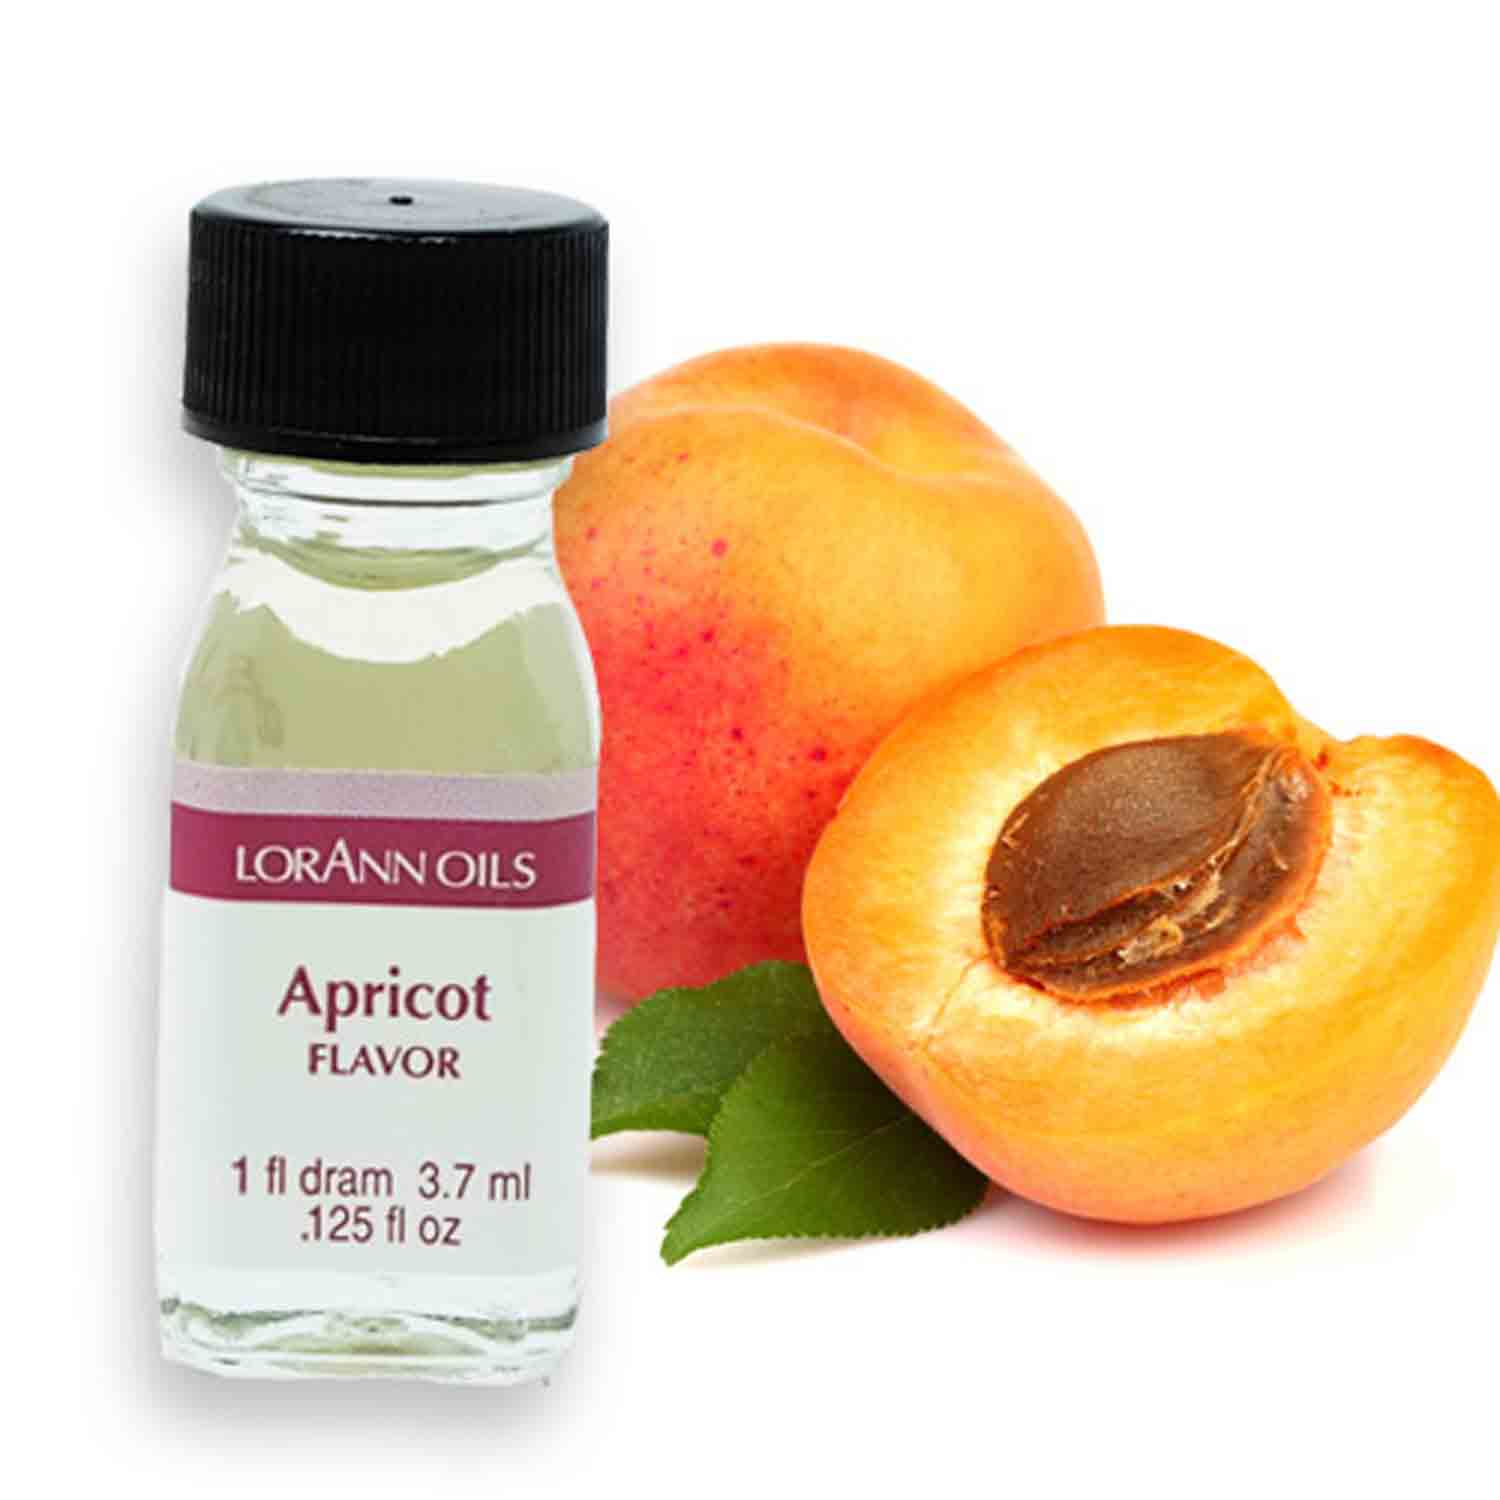 Apricot Super-Strength Flavor